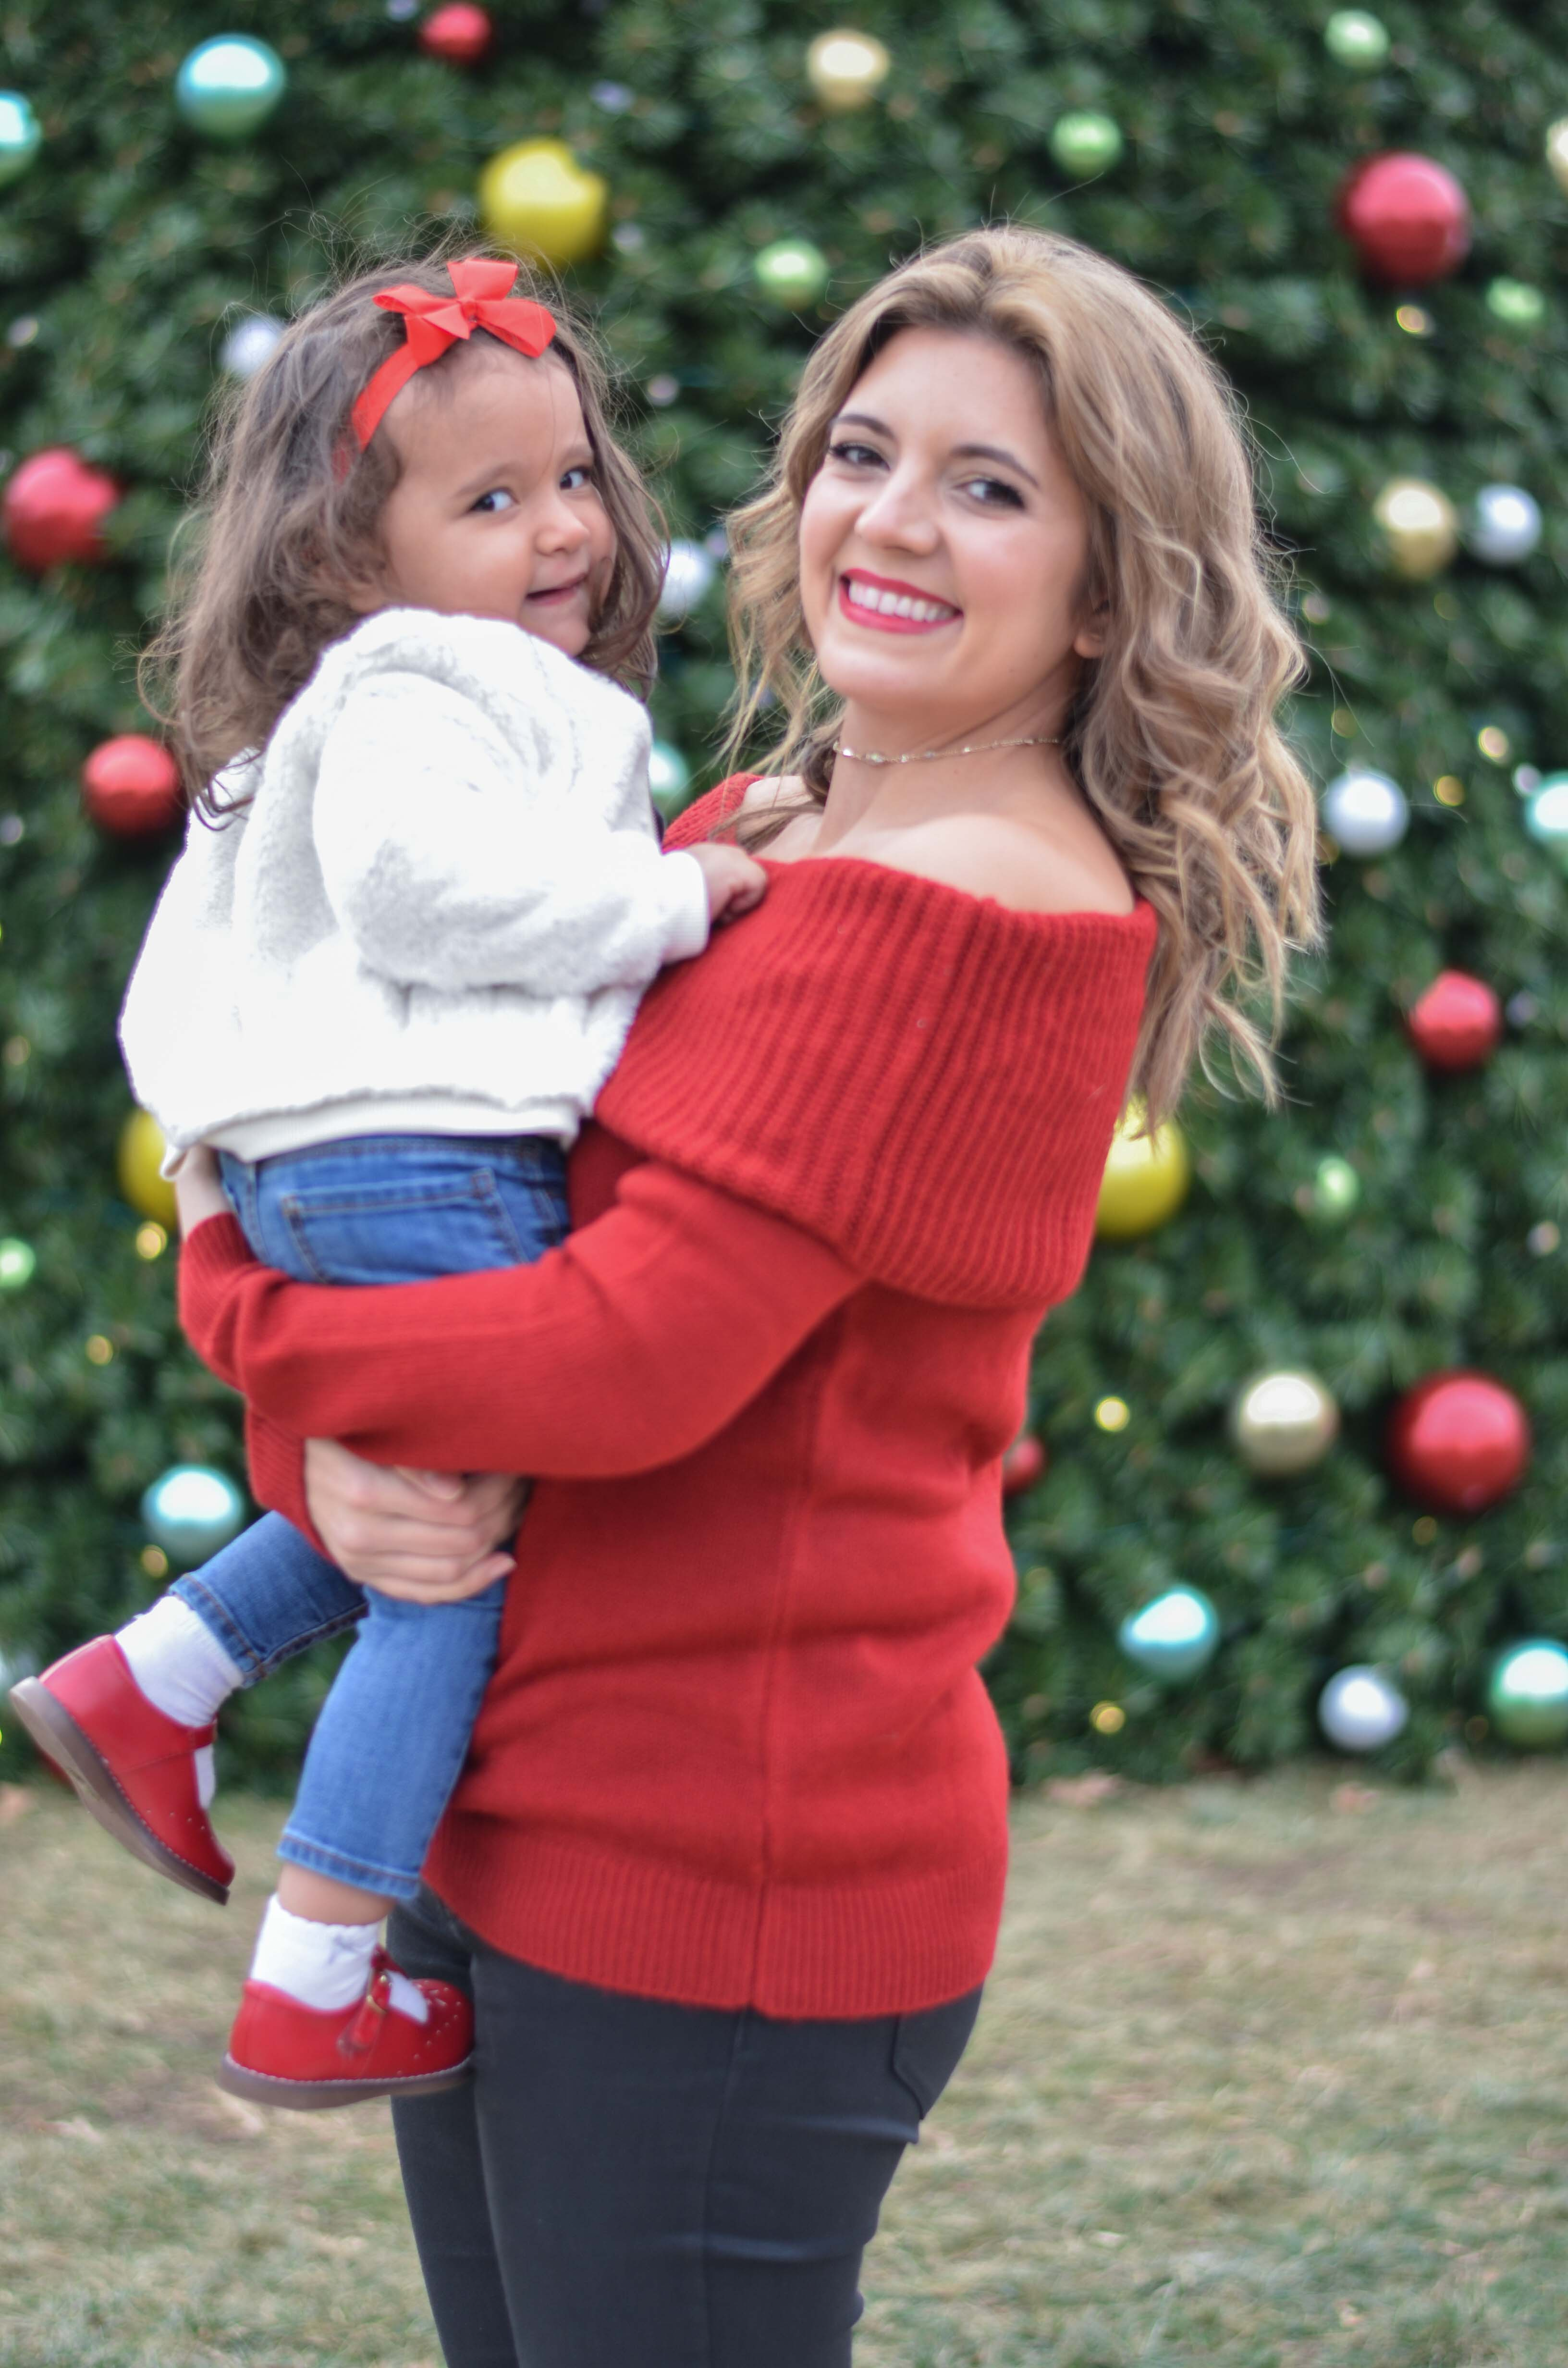 toddler and mom winter outfit - cute family holiday outfit | www.bylaurenm.com